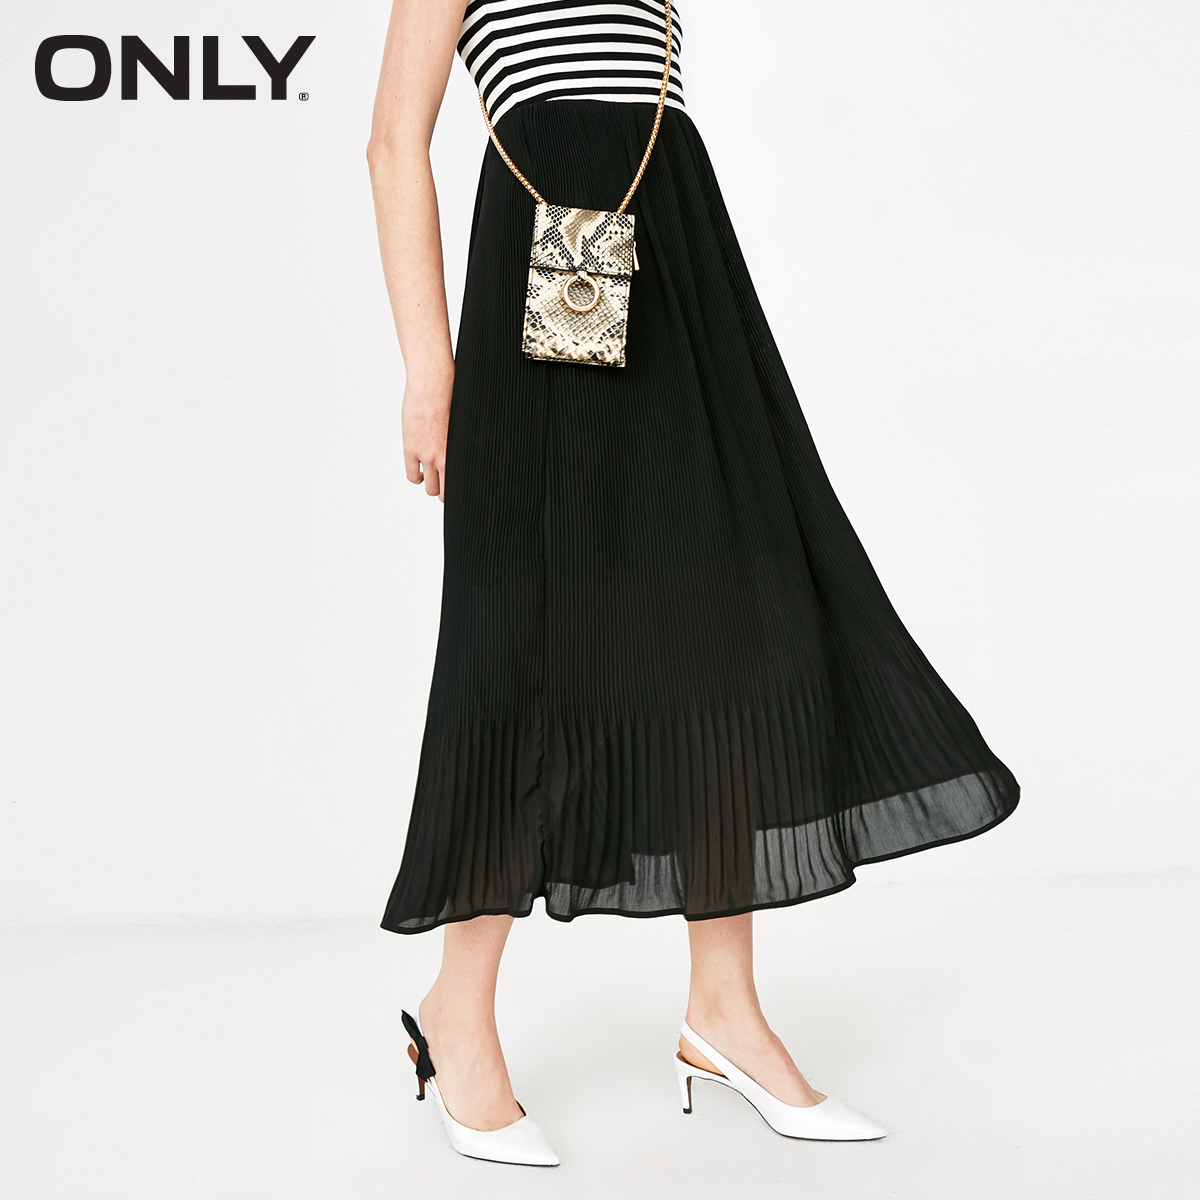 ONLY 2019 Spring amp Summer Fake Two piece Off shoulder Dress 118261501 in Dresses from Women 39 s Clothing